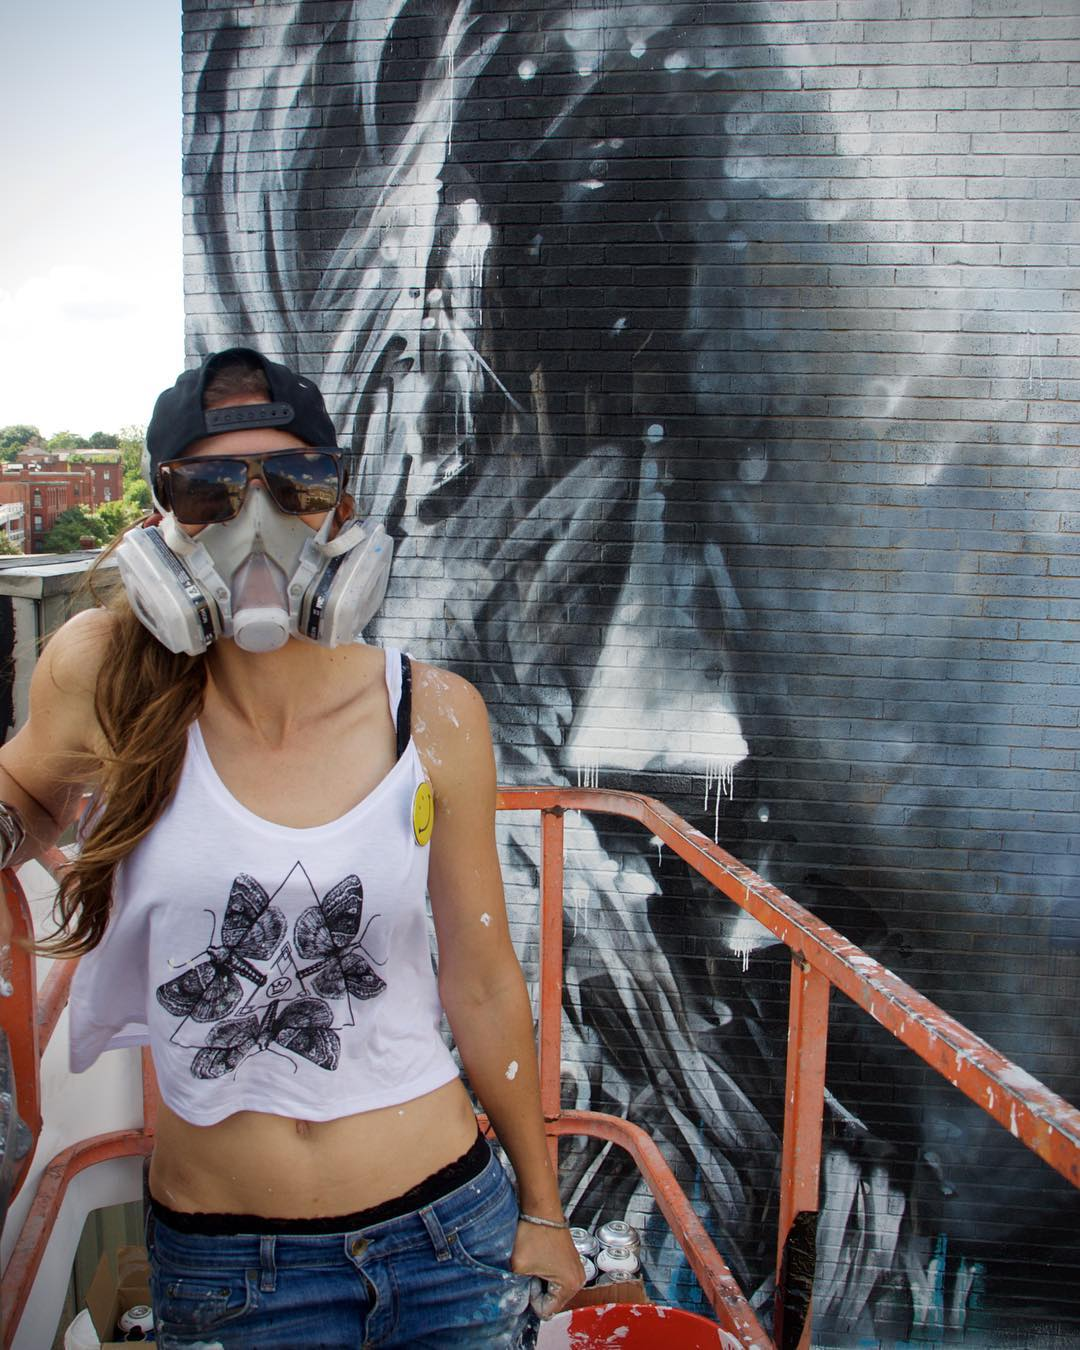 The talented @starfightera adding the finishing touches on her mural for @powwowworcester in her new SprATX 'Evolution' crop tank! • SprATX is proud to sponsor along side: @powwowworldwide @1xrun @monsterenergy @actionwoo @worcesterwares...